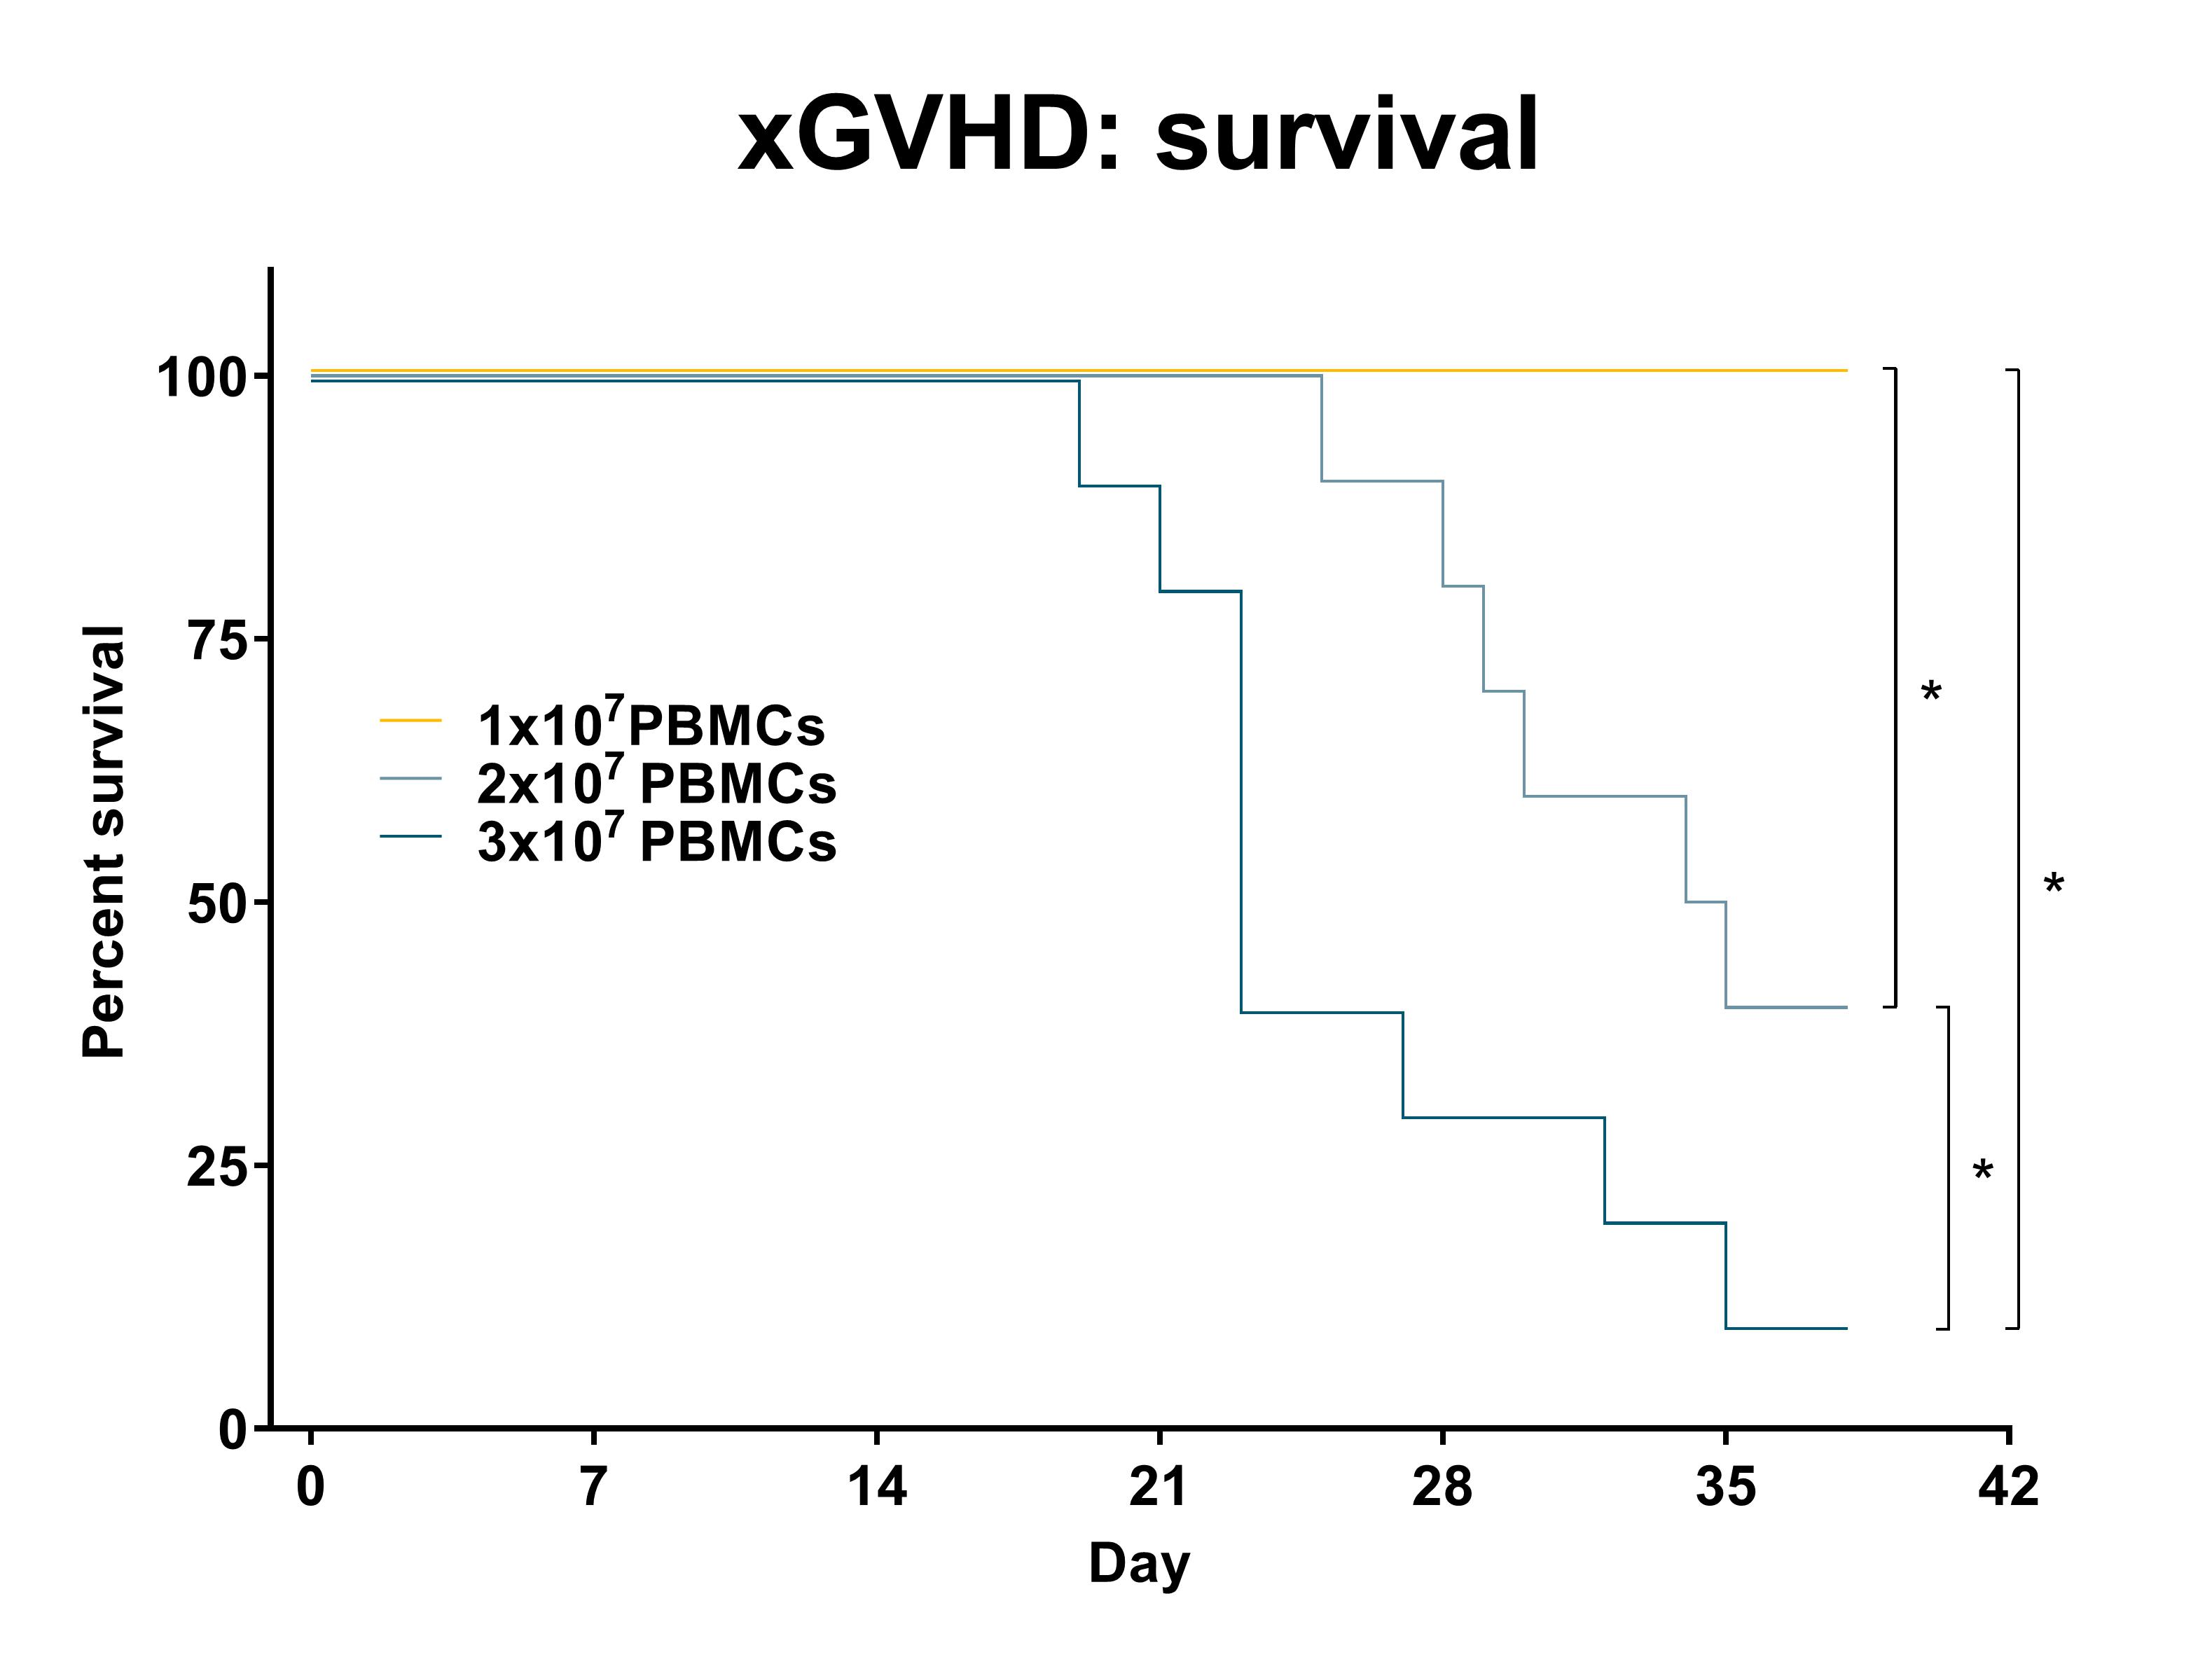 Recipient mice were injected with a pre-determined number of purified single-donor human PBMCs (see legend) on day 0. Survival was recorded daily. Statistical evaluation by Mantel-Cox test. *: p<0.05 comparing indicated groups. n=15 per group.